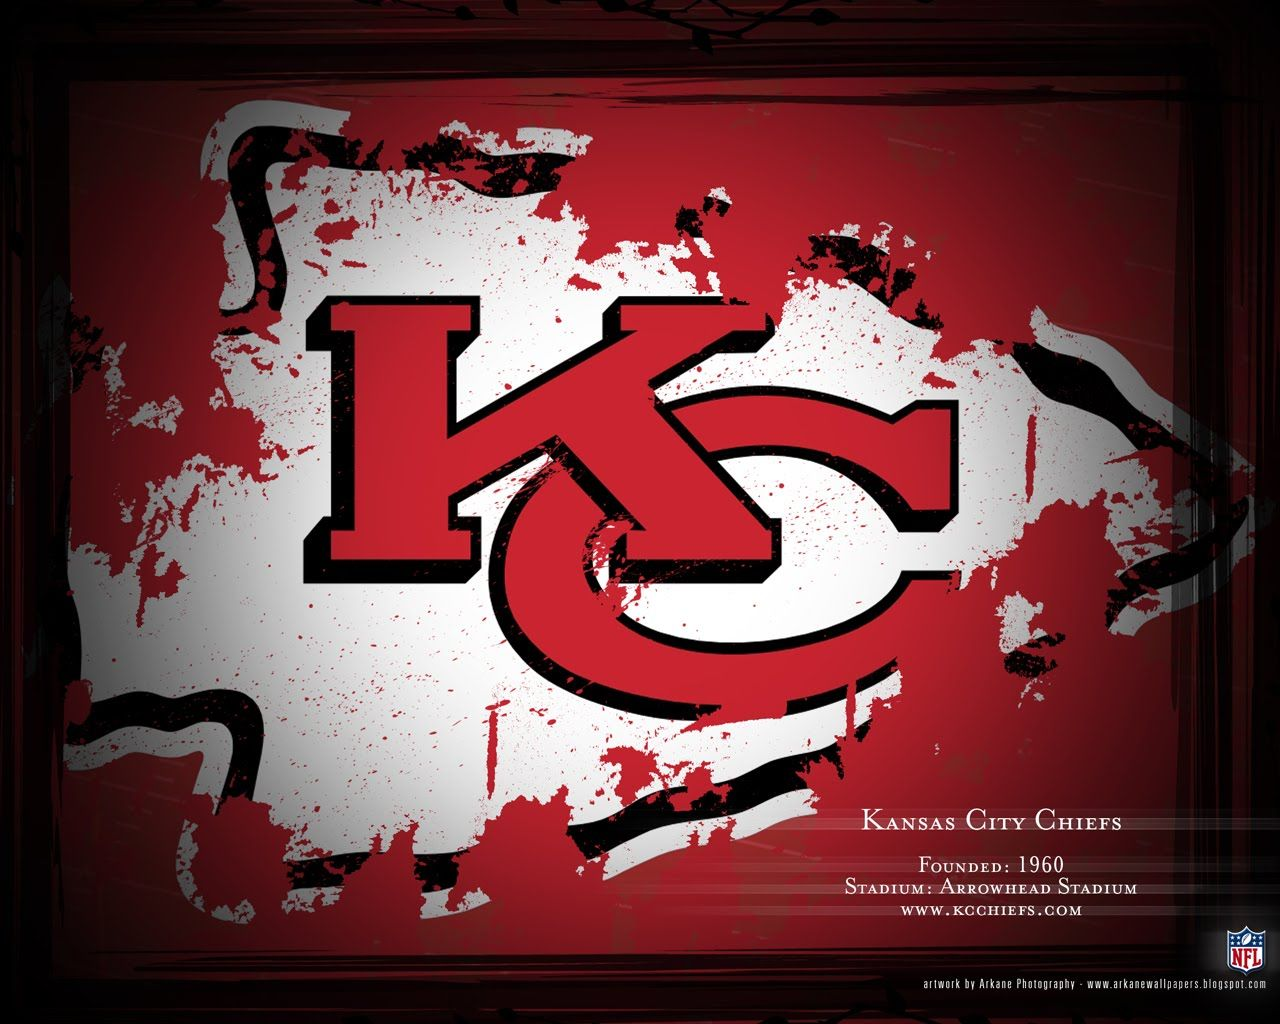 Arkane Nfl Wallpapers Profile Kansas City Chiefs Chiefs Wallpaper Kansas City Chiefs Logo Kansas City Chiefs